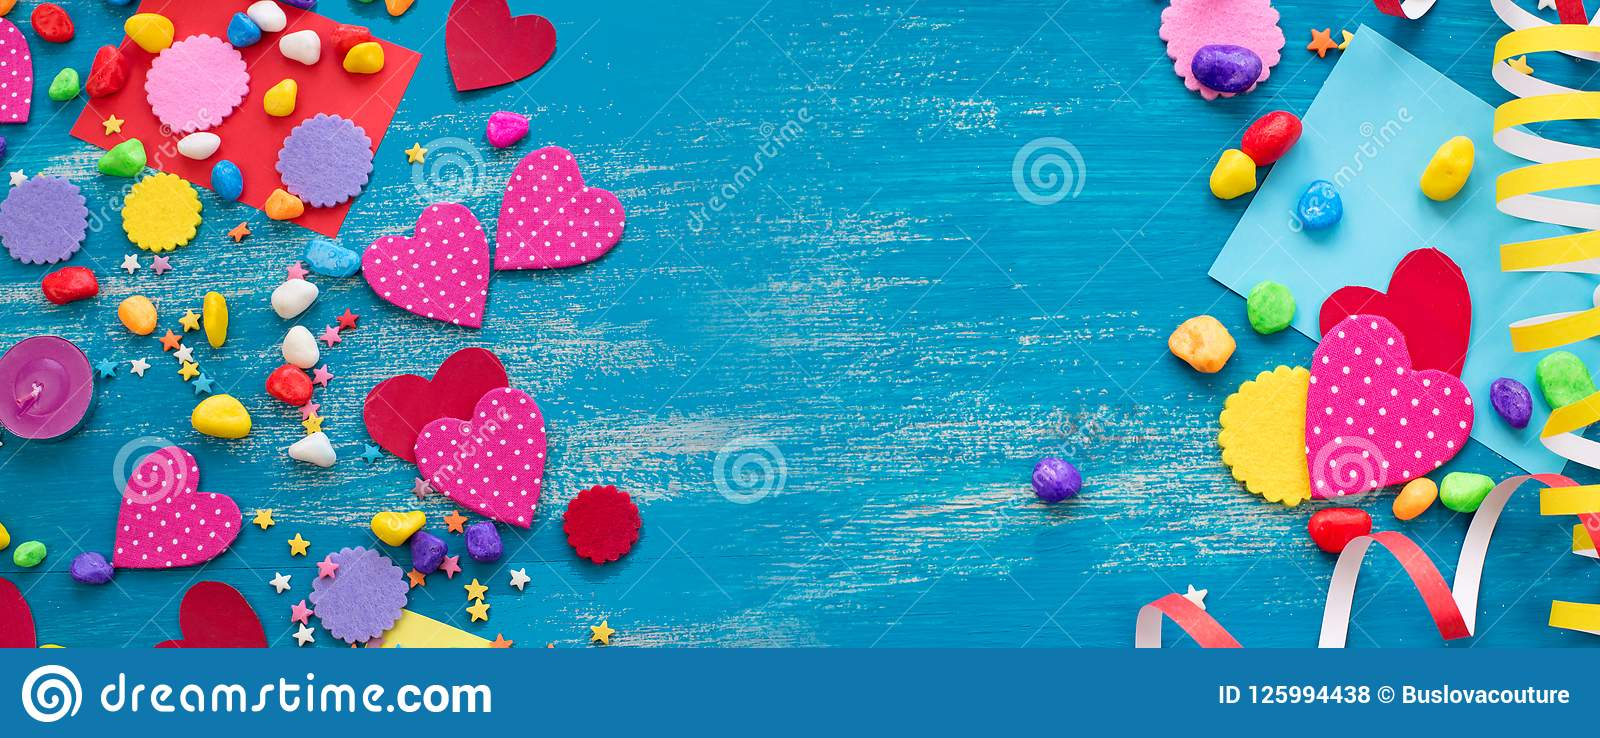 Banner Decorative holiday background with streamers confetti candy hearts decor.